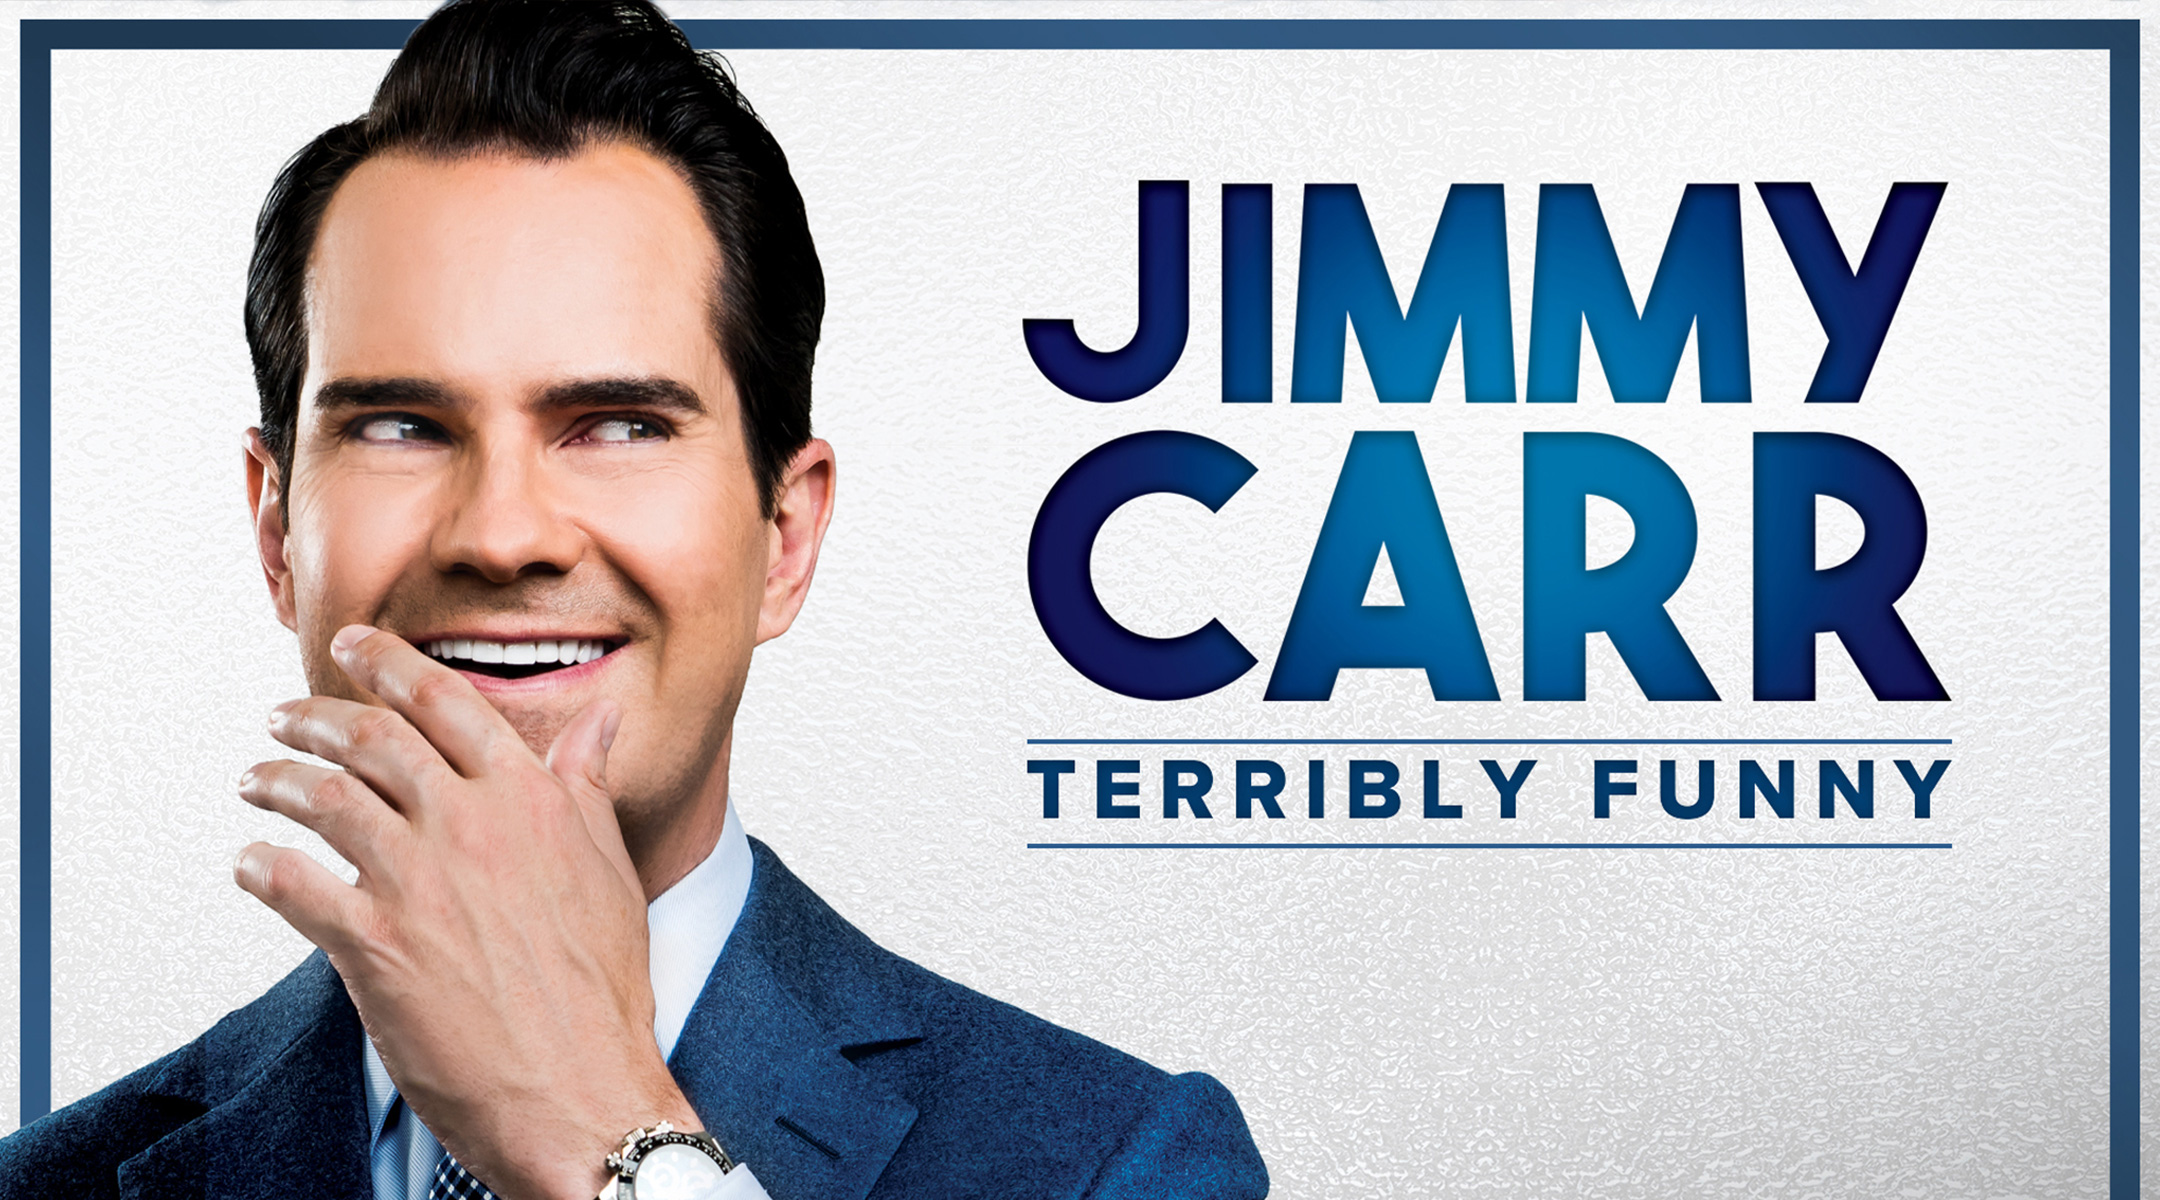 Jimmy Carr: Terribly Funny - Aberdeen - 14th